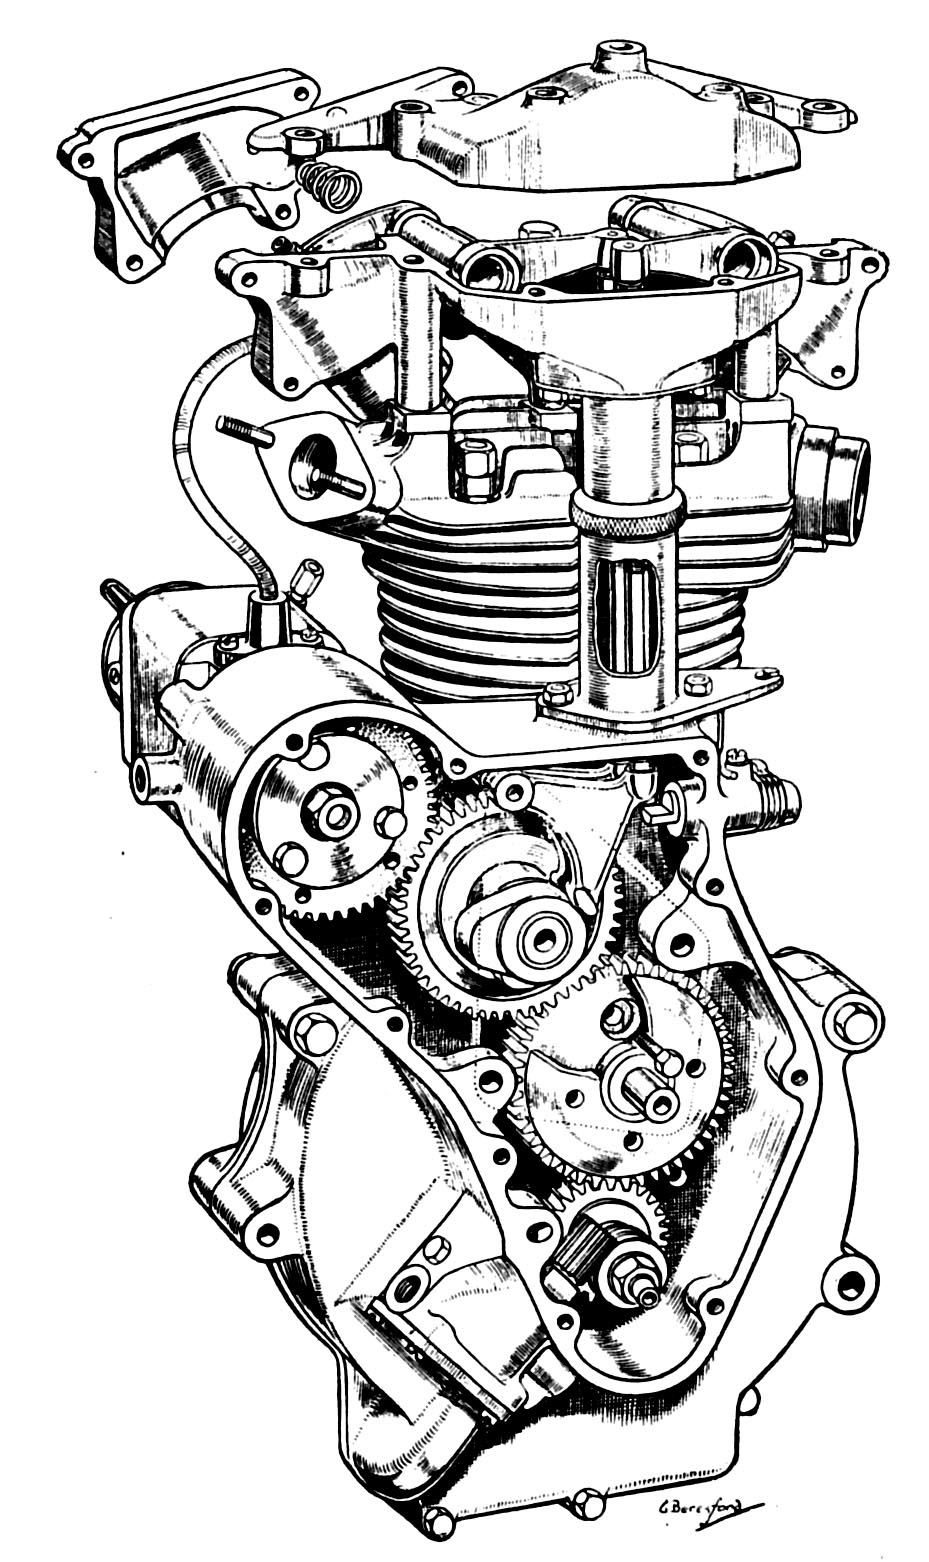 Engine drawing at getdrawings free for personal use engine